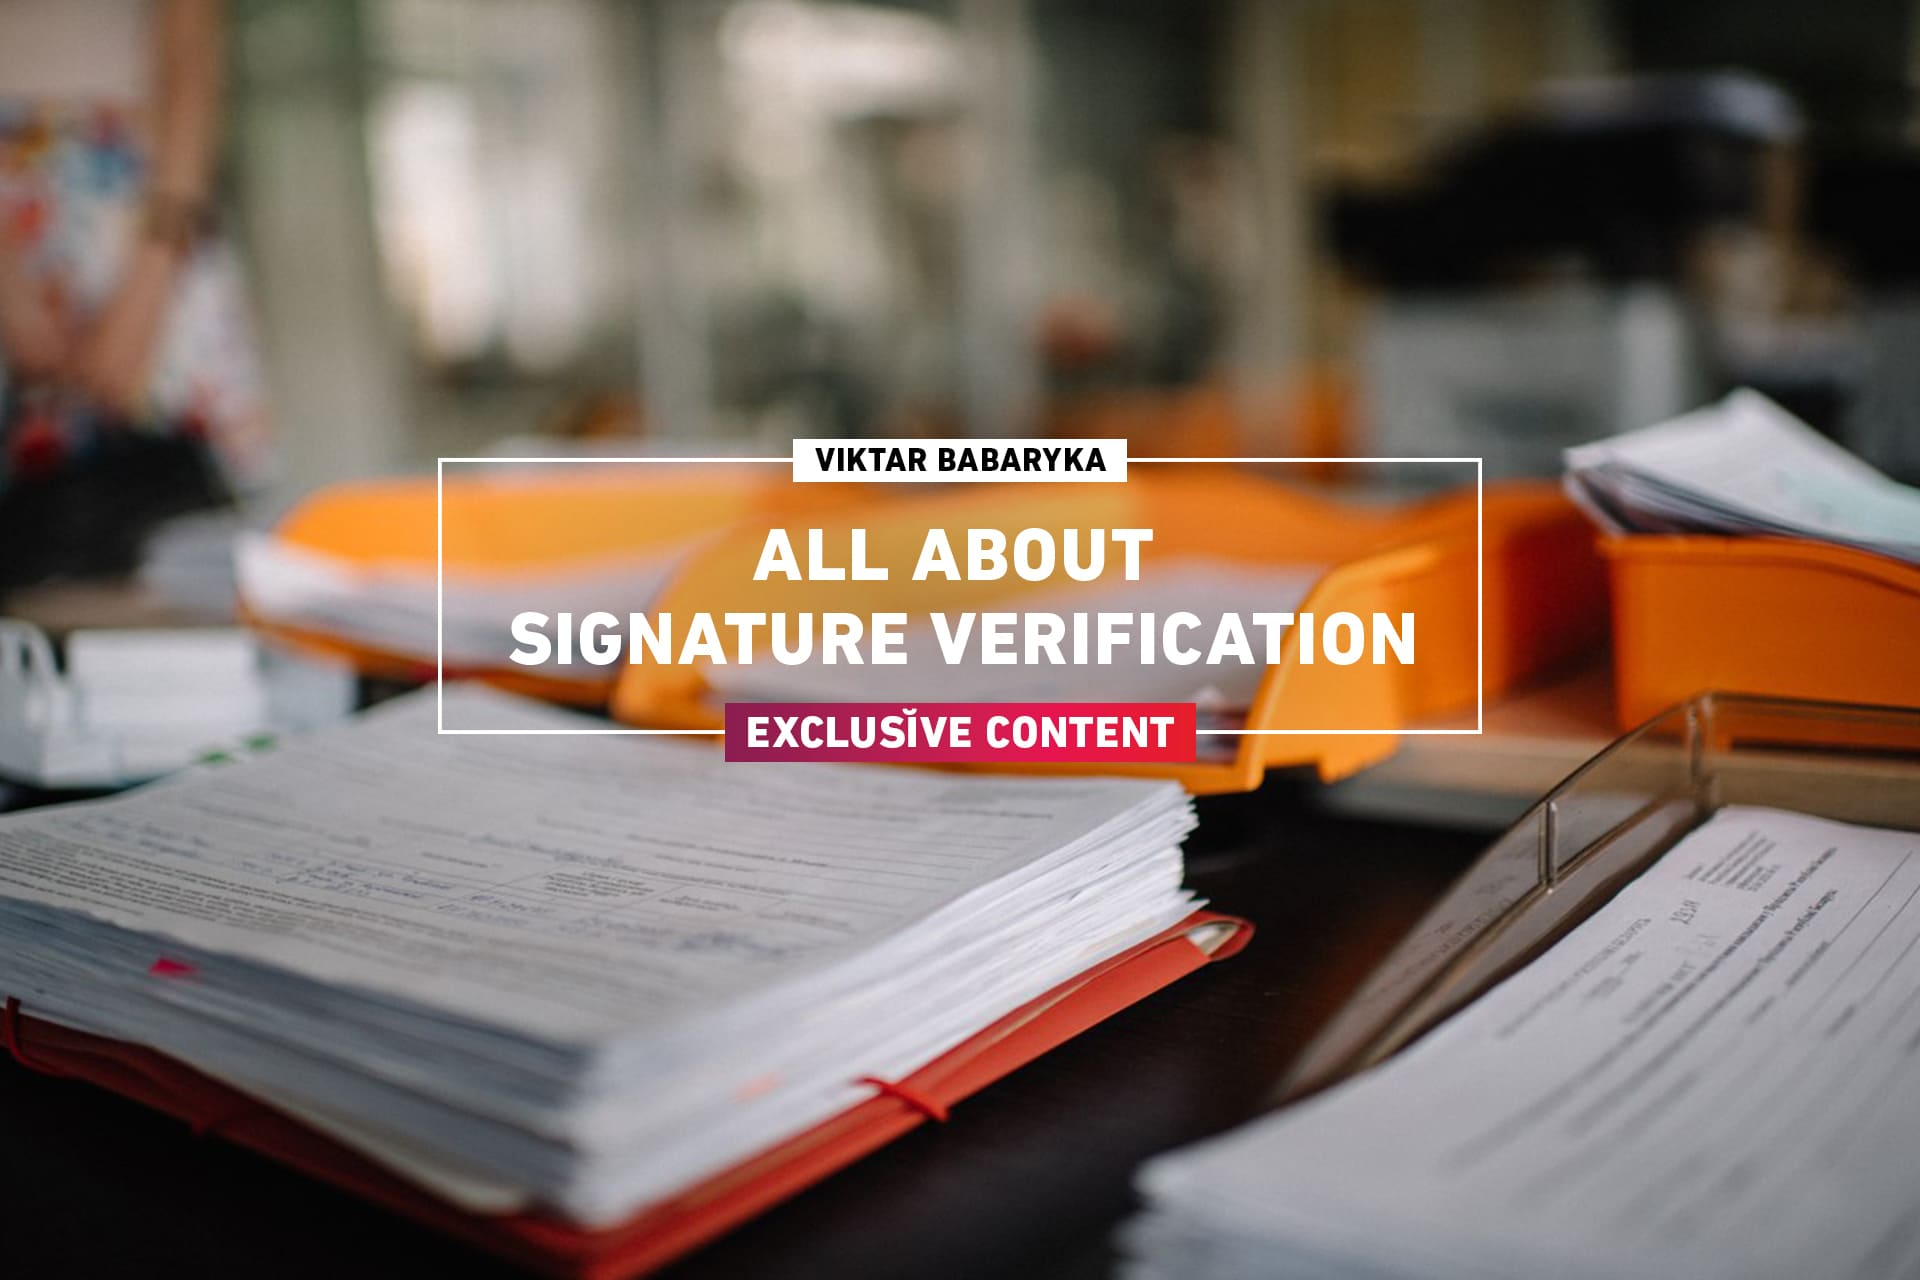 How Viktar Babaryka's team collects and verifies signatures